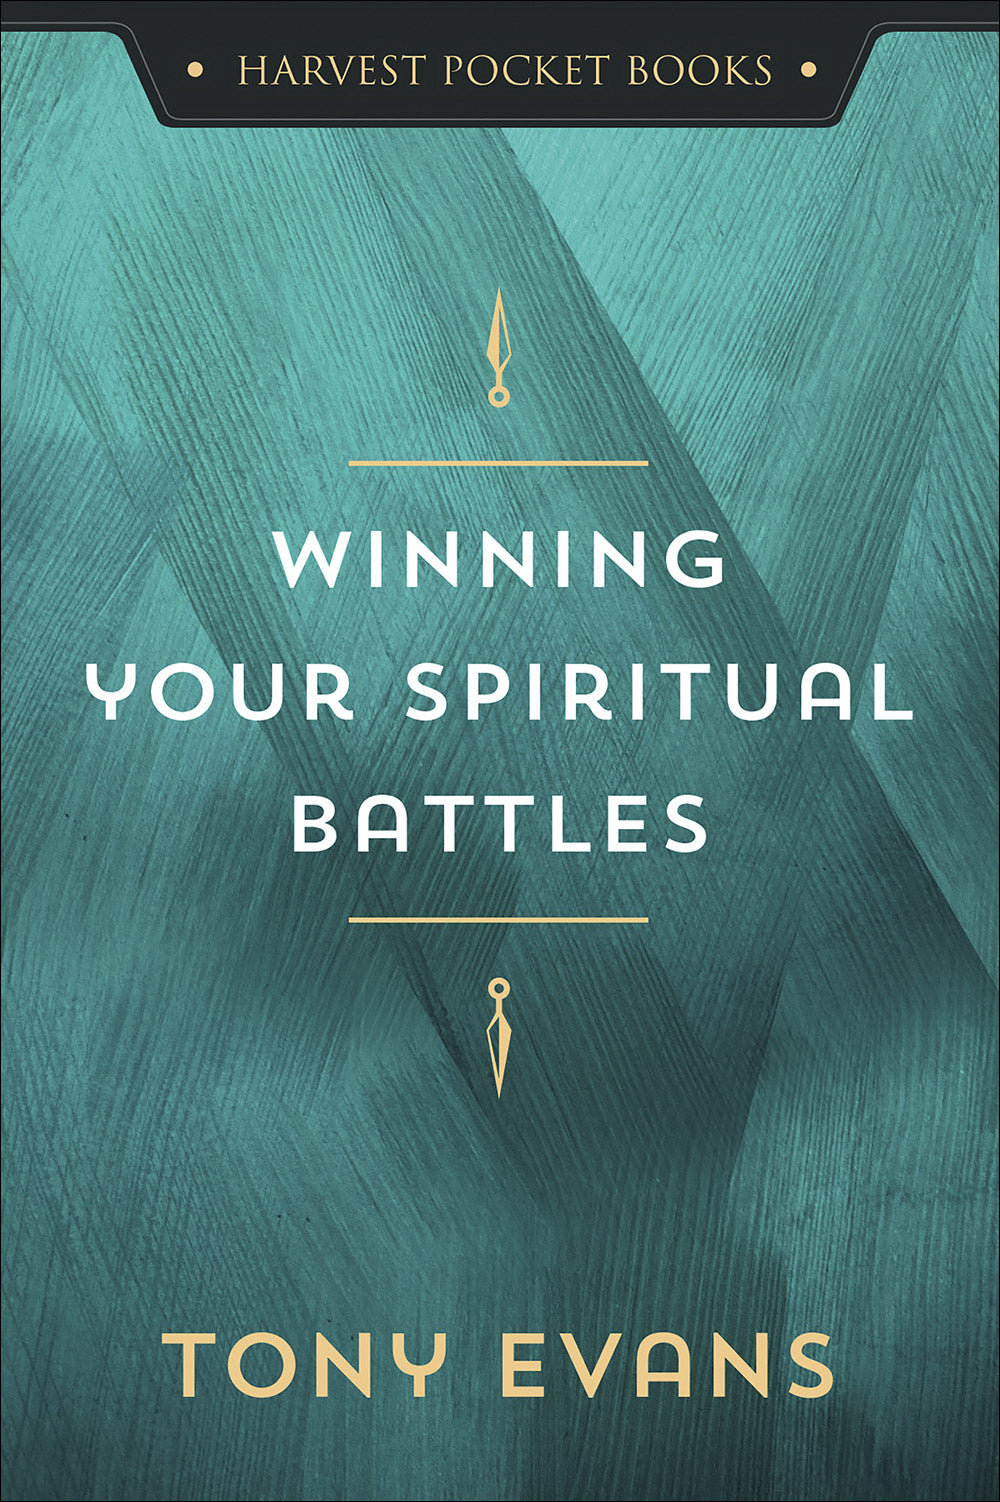 Winning Your Spiritual Battles (Harvest Pocket Books)